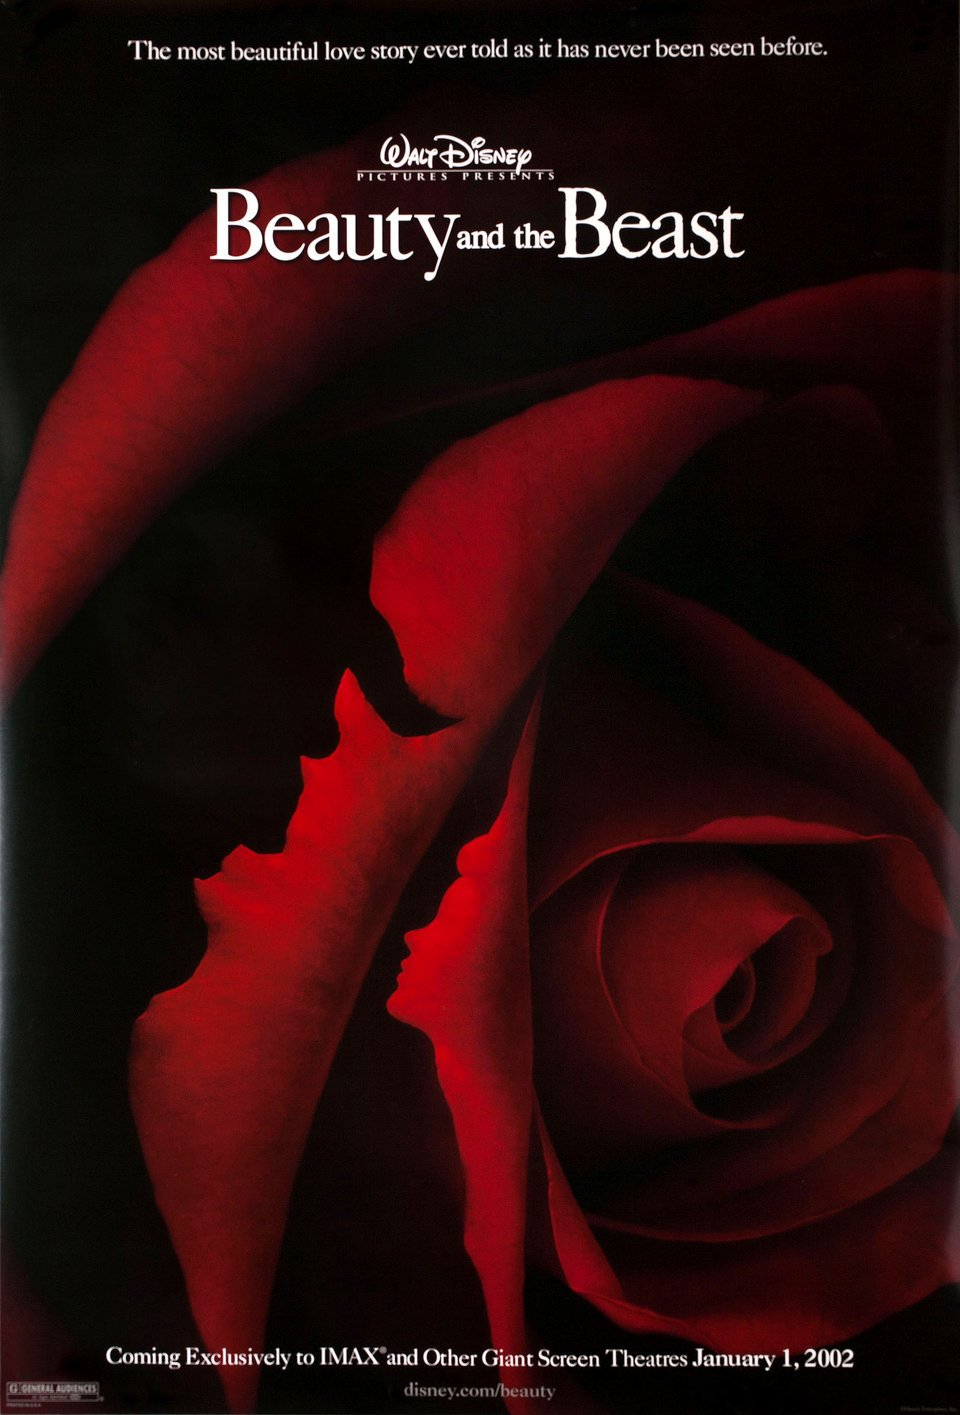 Beauty and the beast r2002 us one sheet poster at amazons beauty and the beast r2002 us one sheet poster at amazons entertainment collectibles store izmirmasajfo